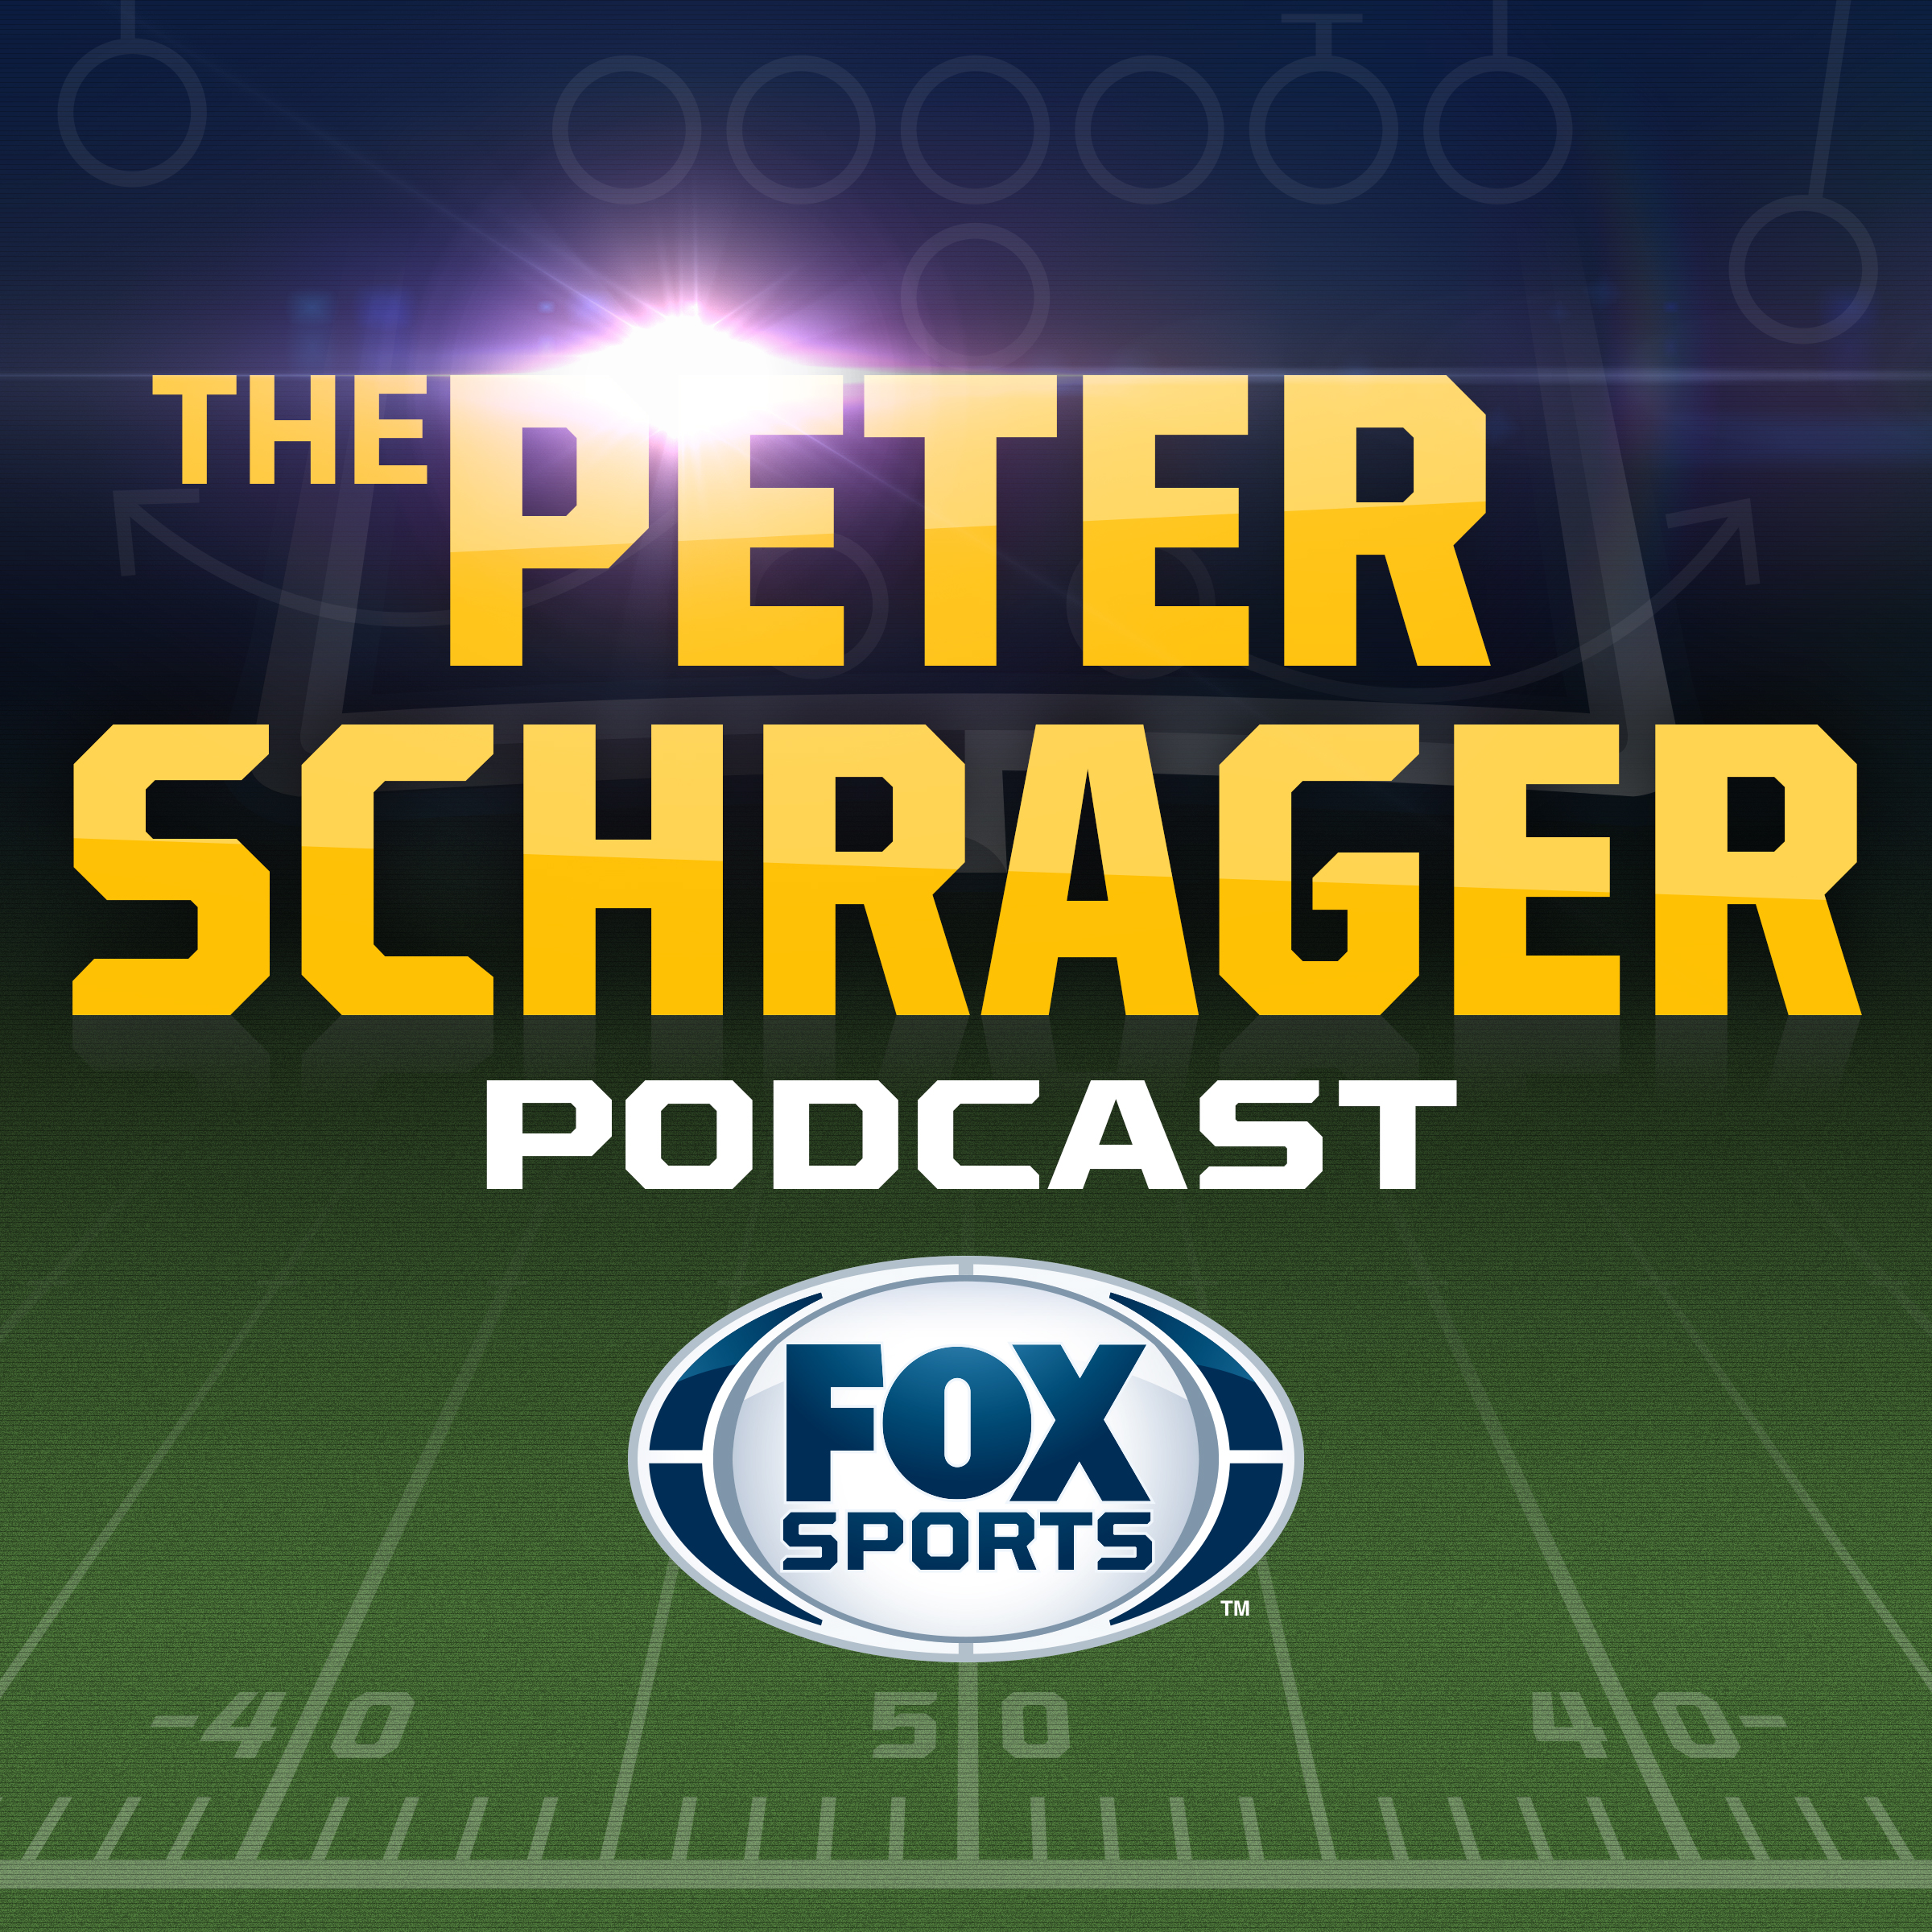 The Peter Schrager Podcast